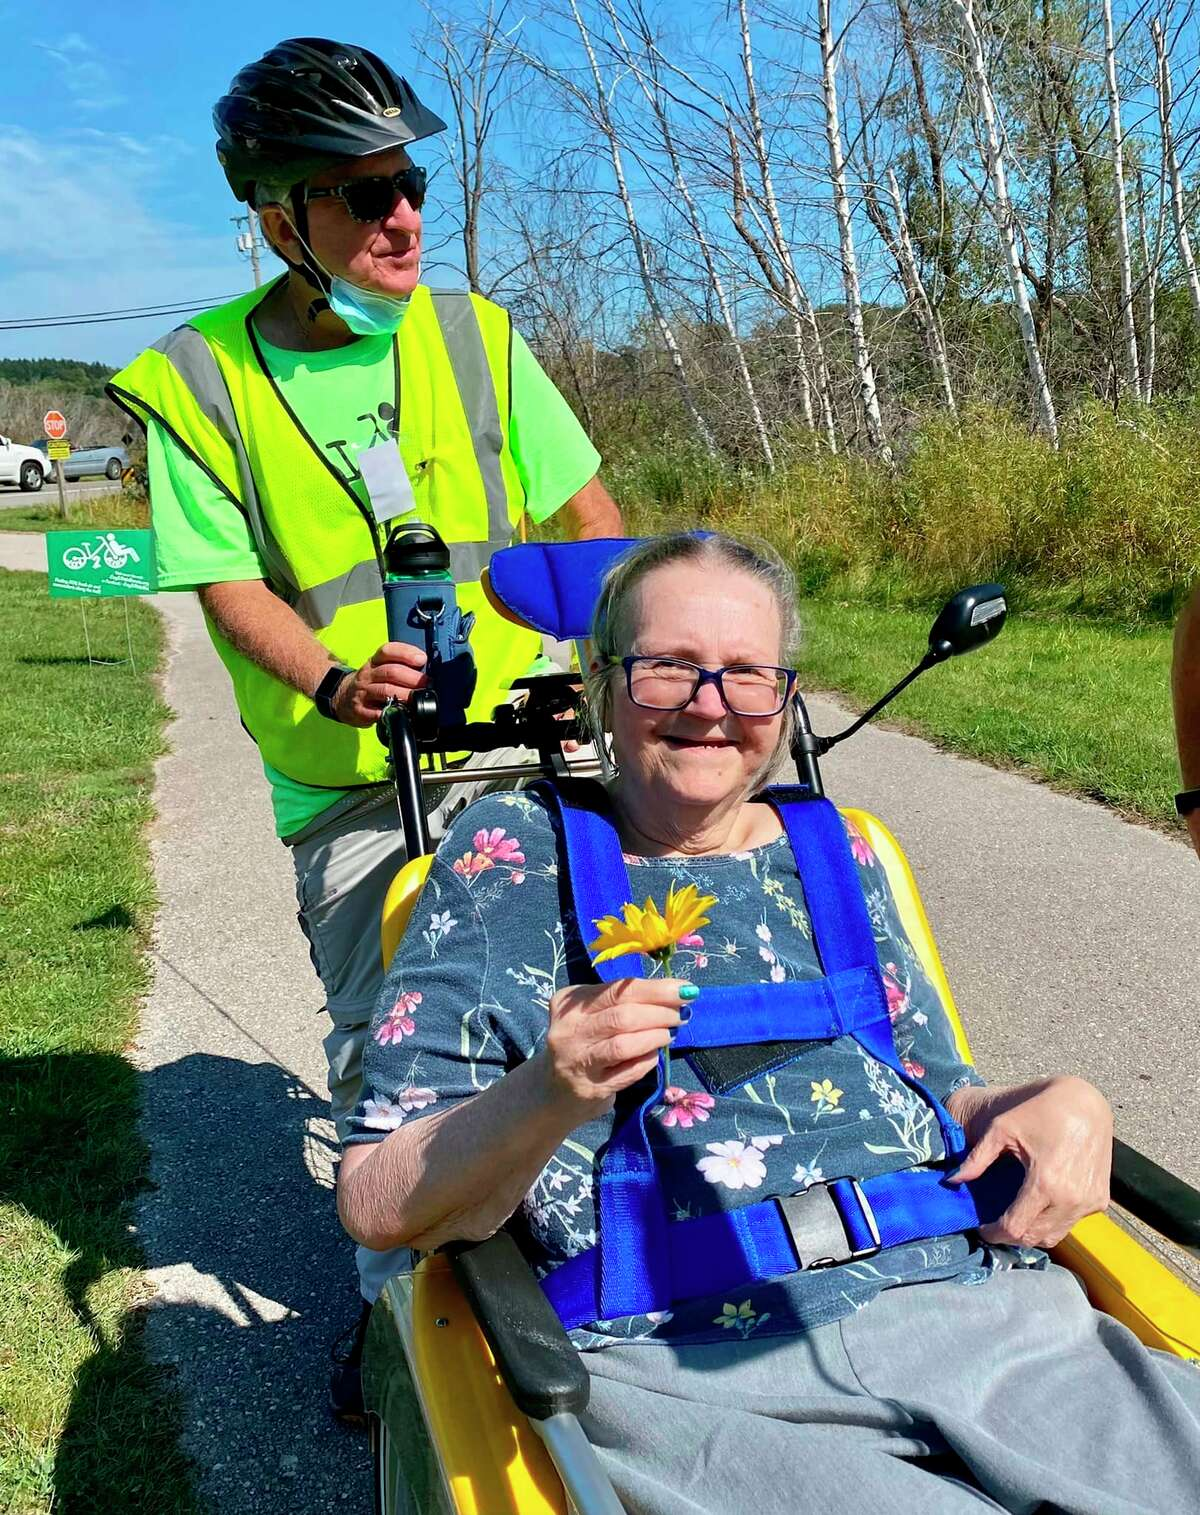 Experiencing the outdoors can be a challenge for people with mobility issues, so Joy2Rideis helping toget people outside and into the fresh air. (Courtesy Photo)